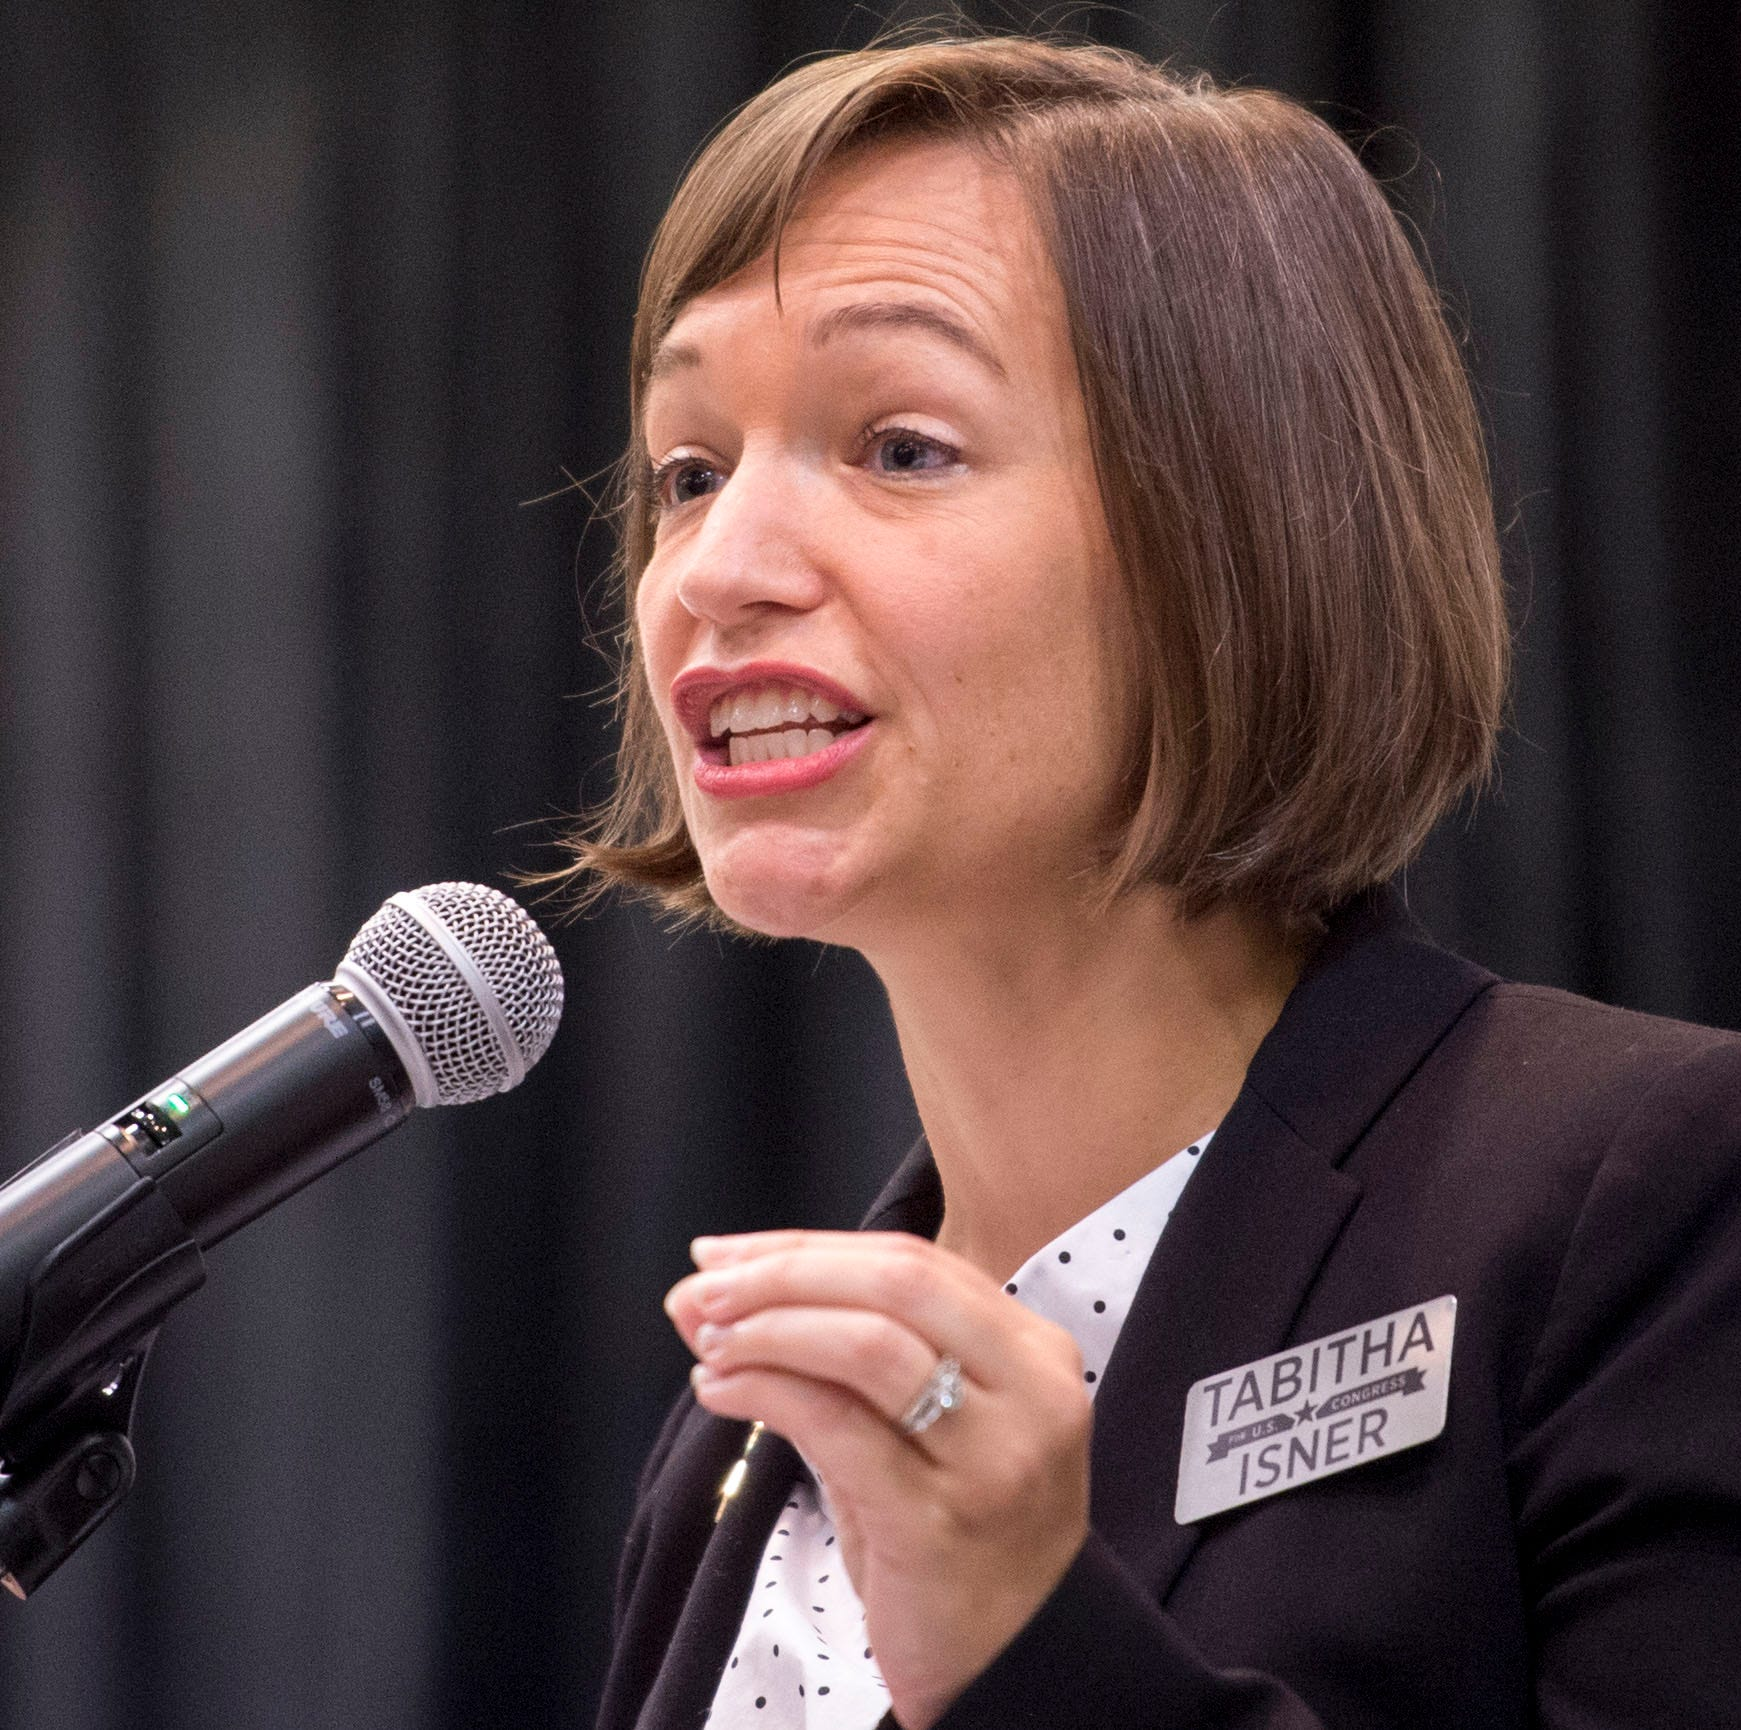 Tabitha Isner to run for chair of Alabama Democratic Party